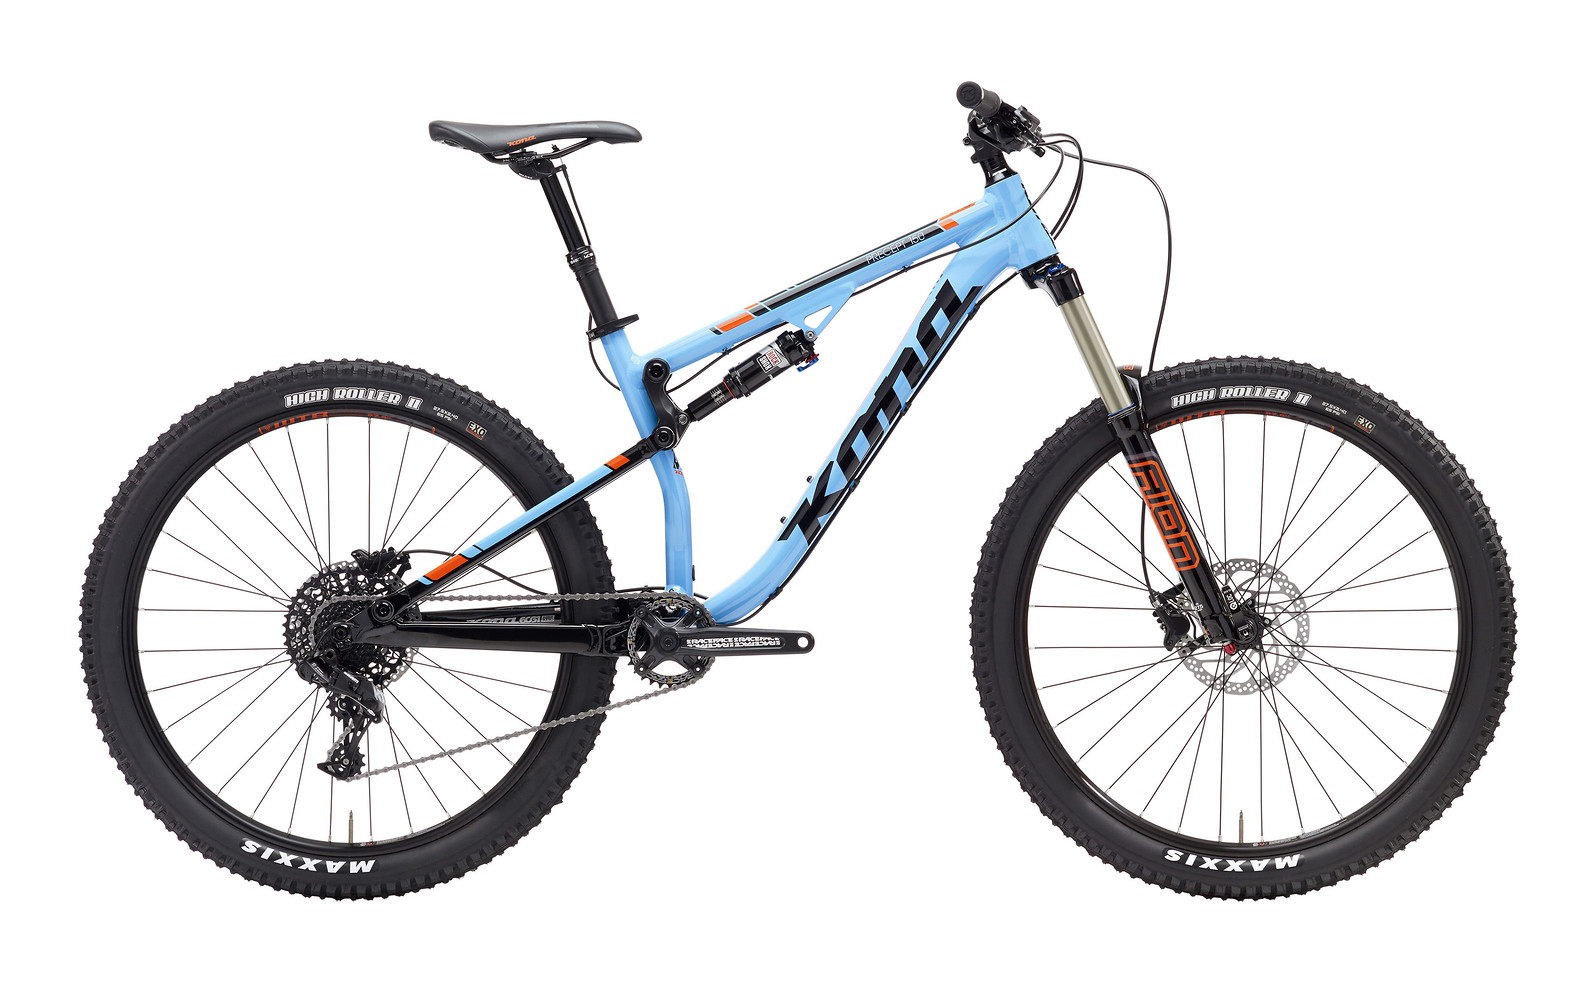 2017 Kona Precept 150 Bike